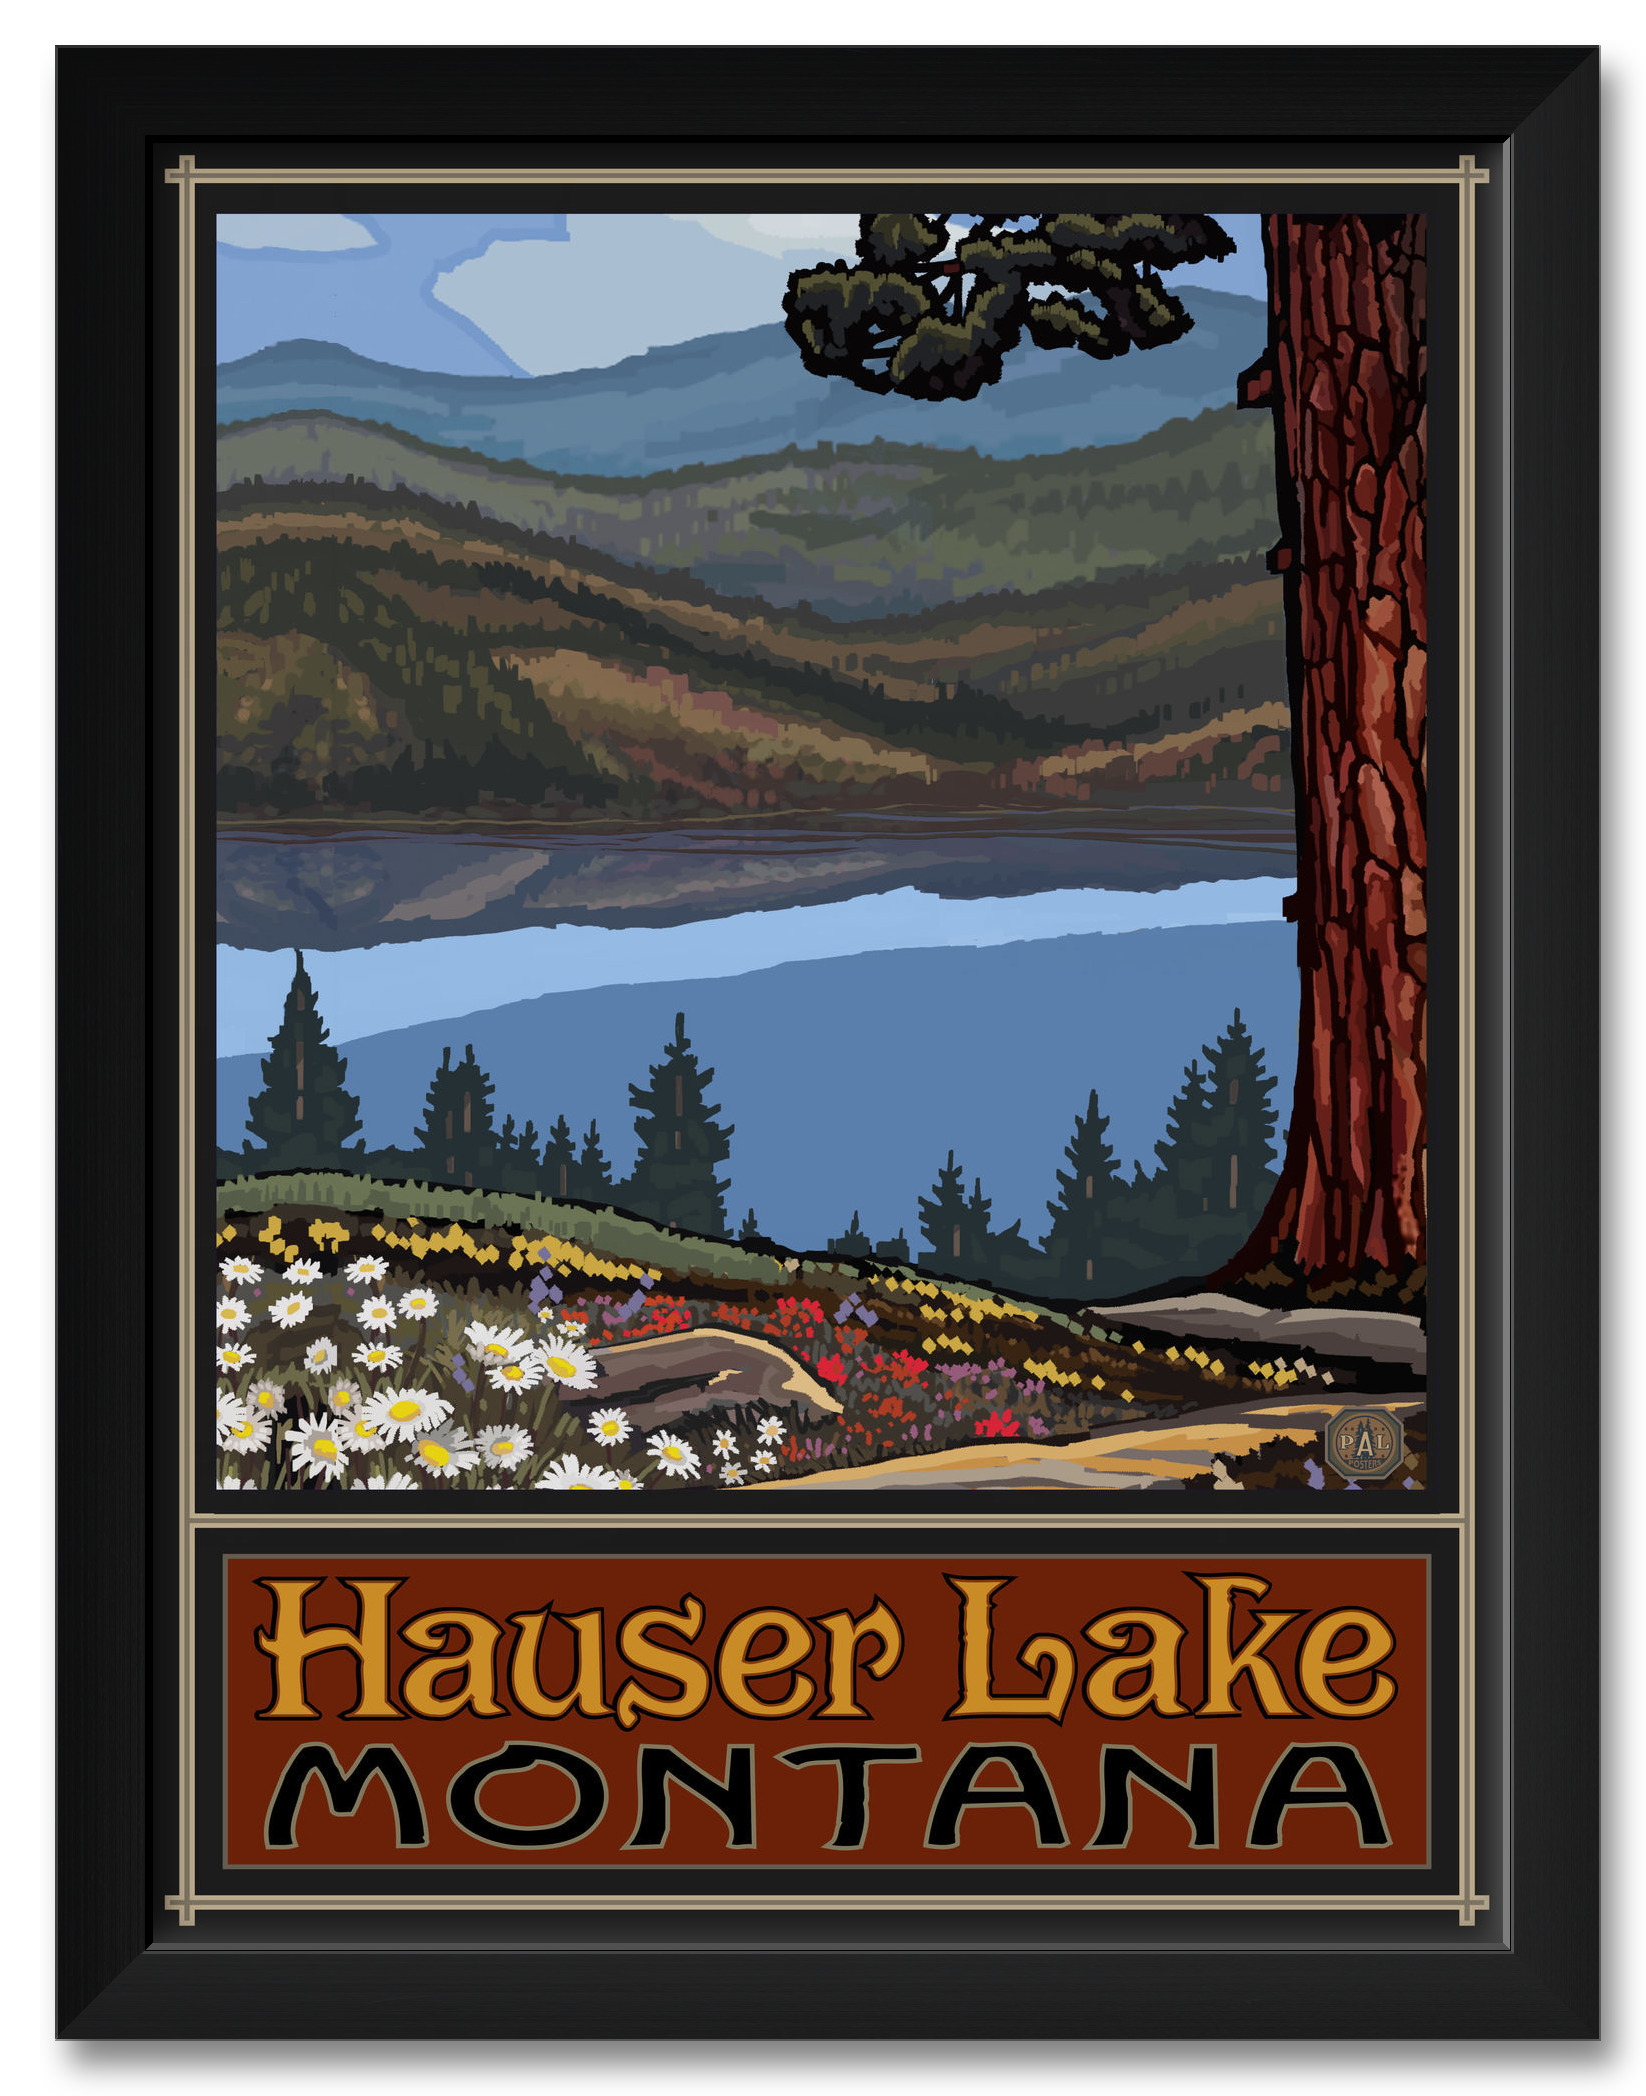 Häuser 24 Hauser Lake Montana Lake Canoers Mountains Framed Art Print By Paul A Lanquist Print Size 18